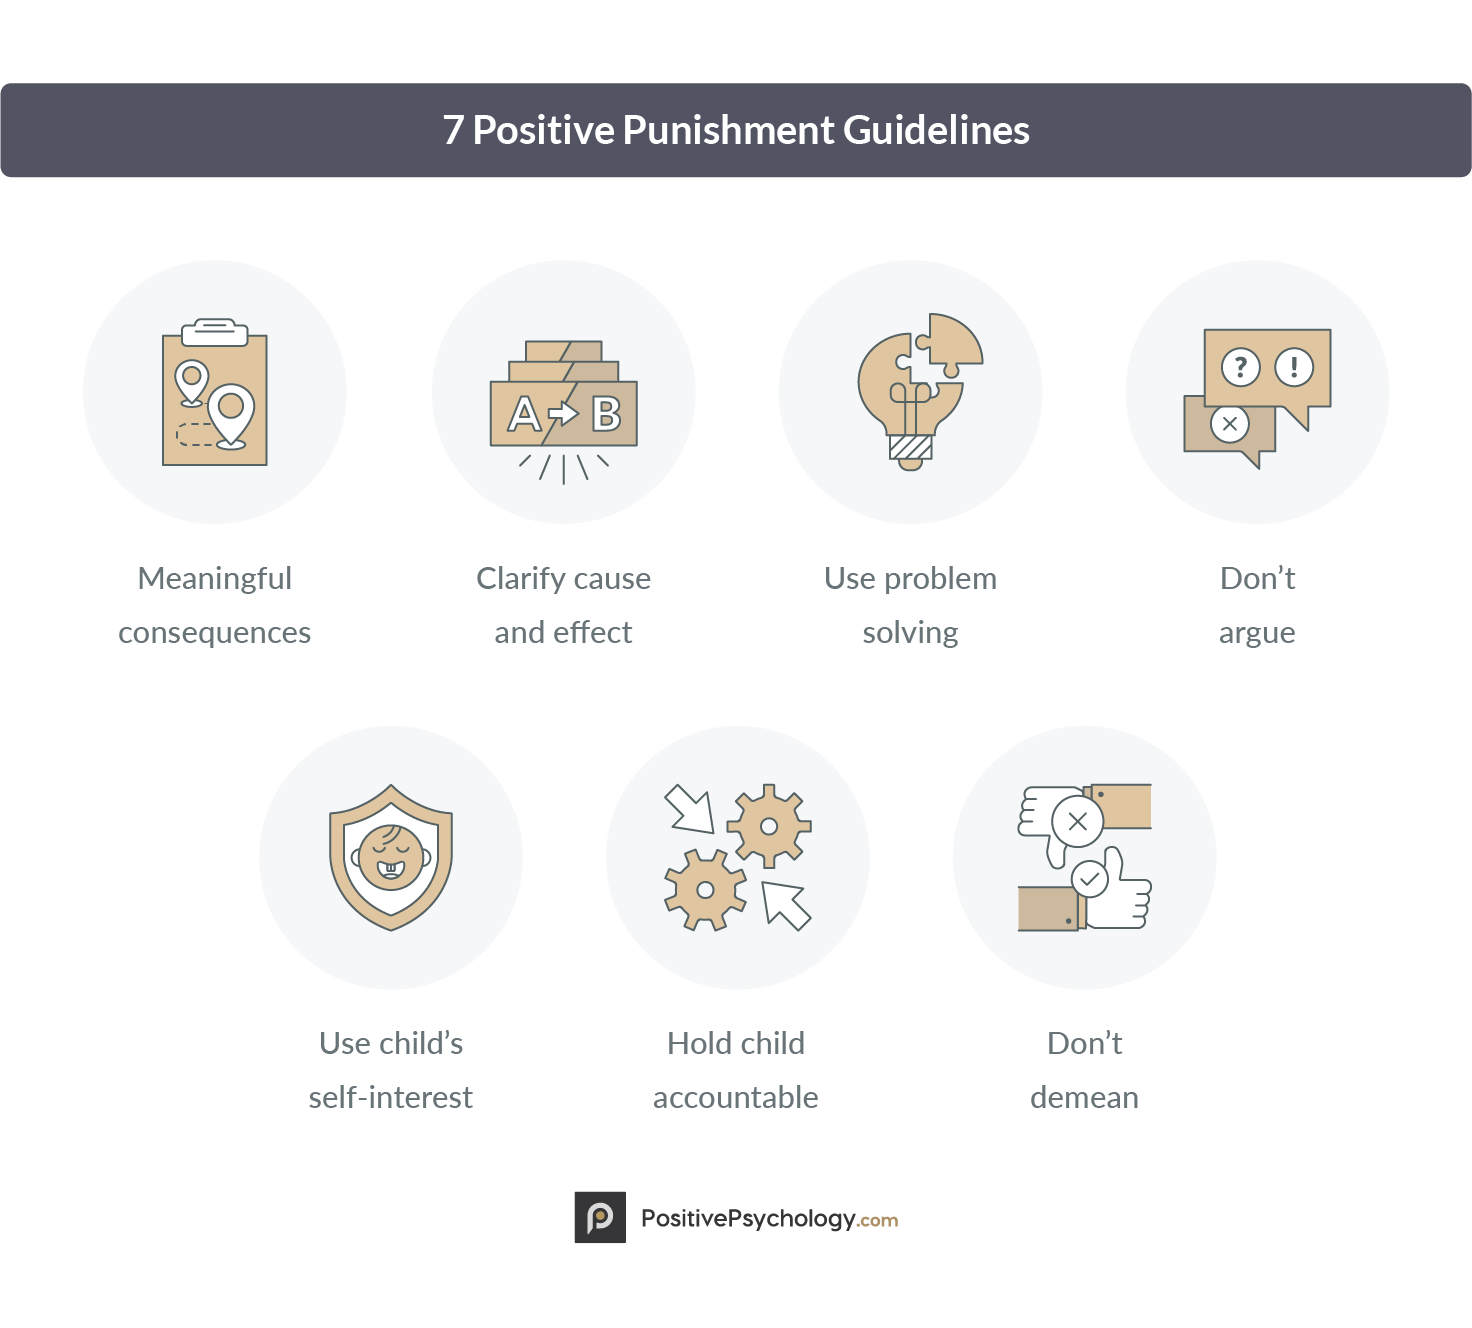 7 Positive Punishment Guidelines